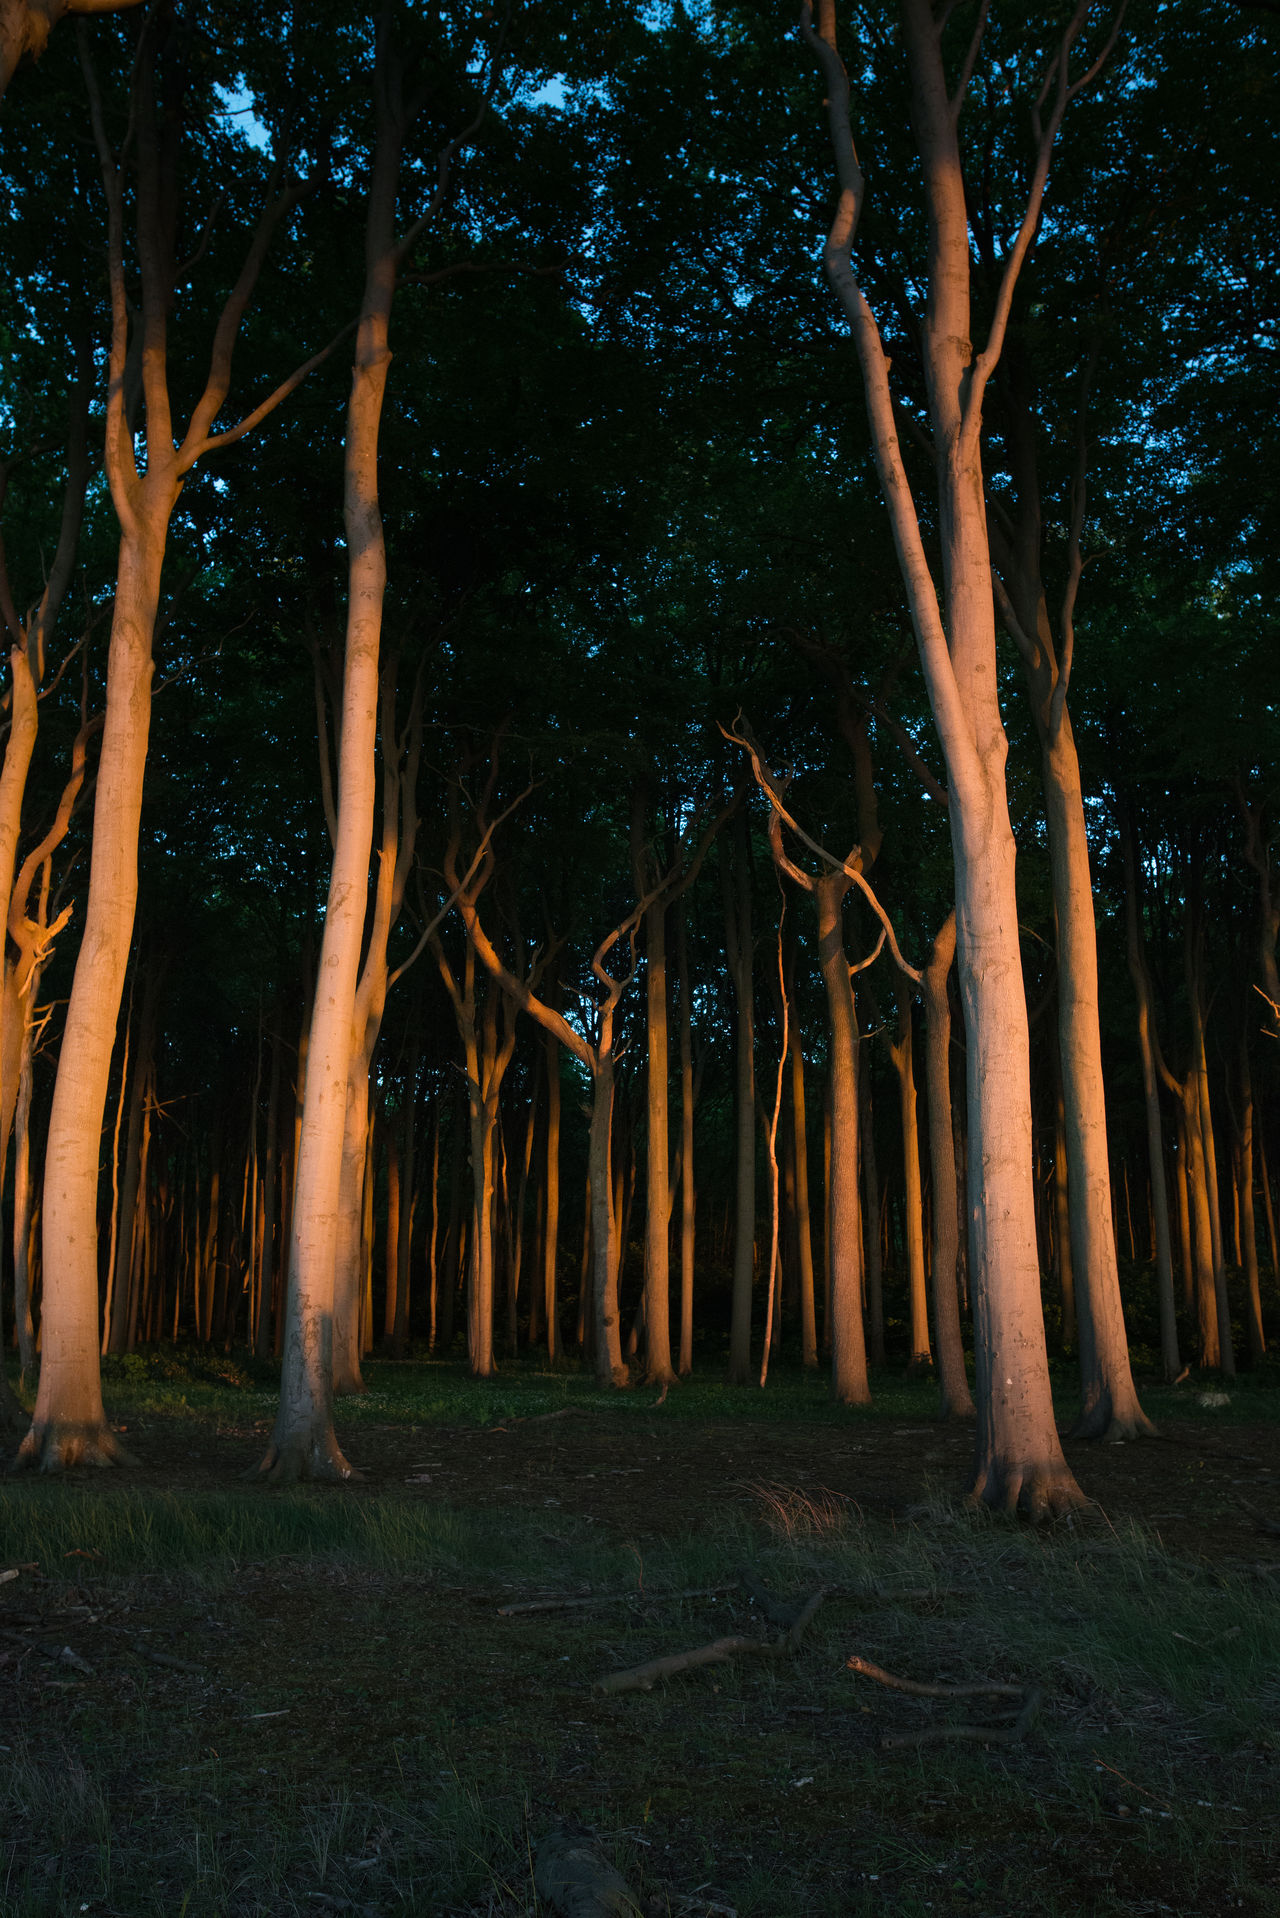 Beauty In Nature Branch Forest Gespensterwald Growth Landscape Nature Nienhagen Germany Night No People Outdoors Tranquility Tree Tree Trunk